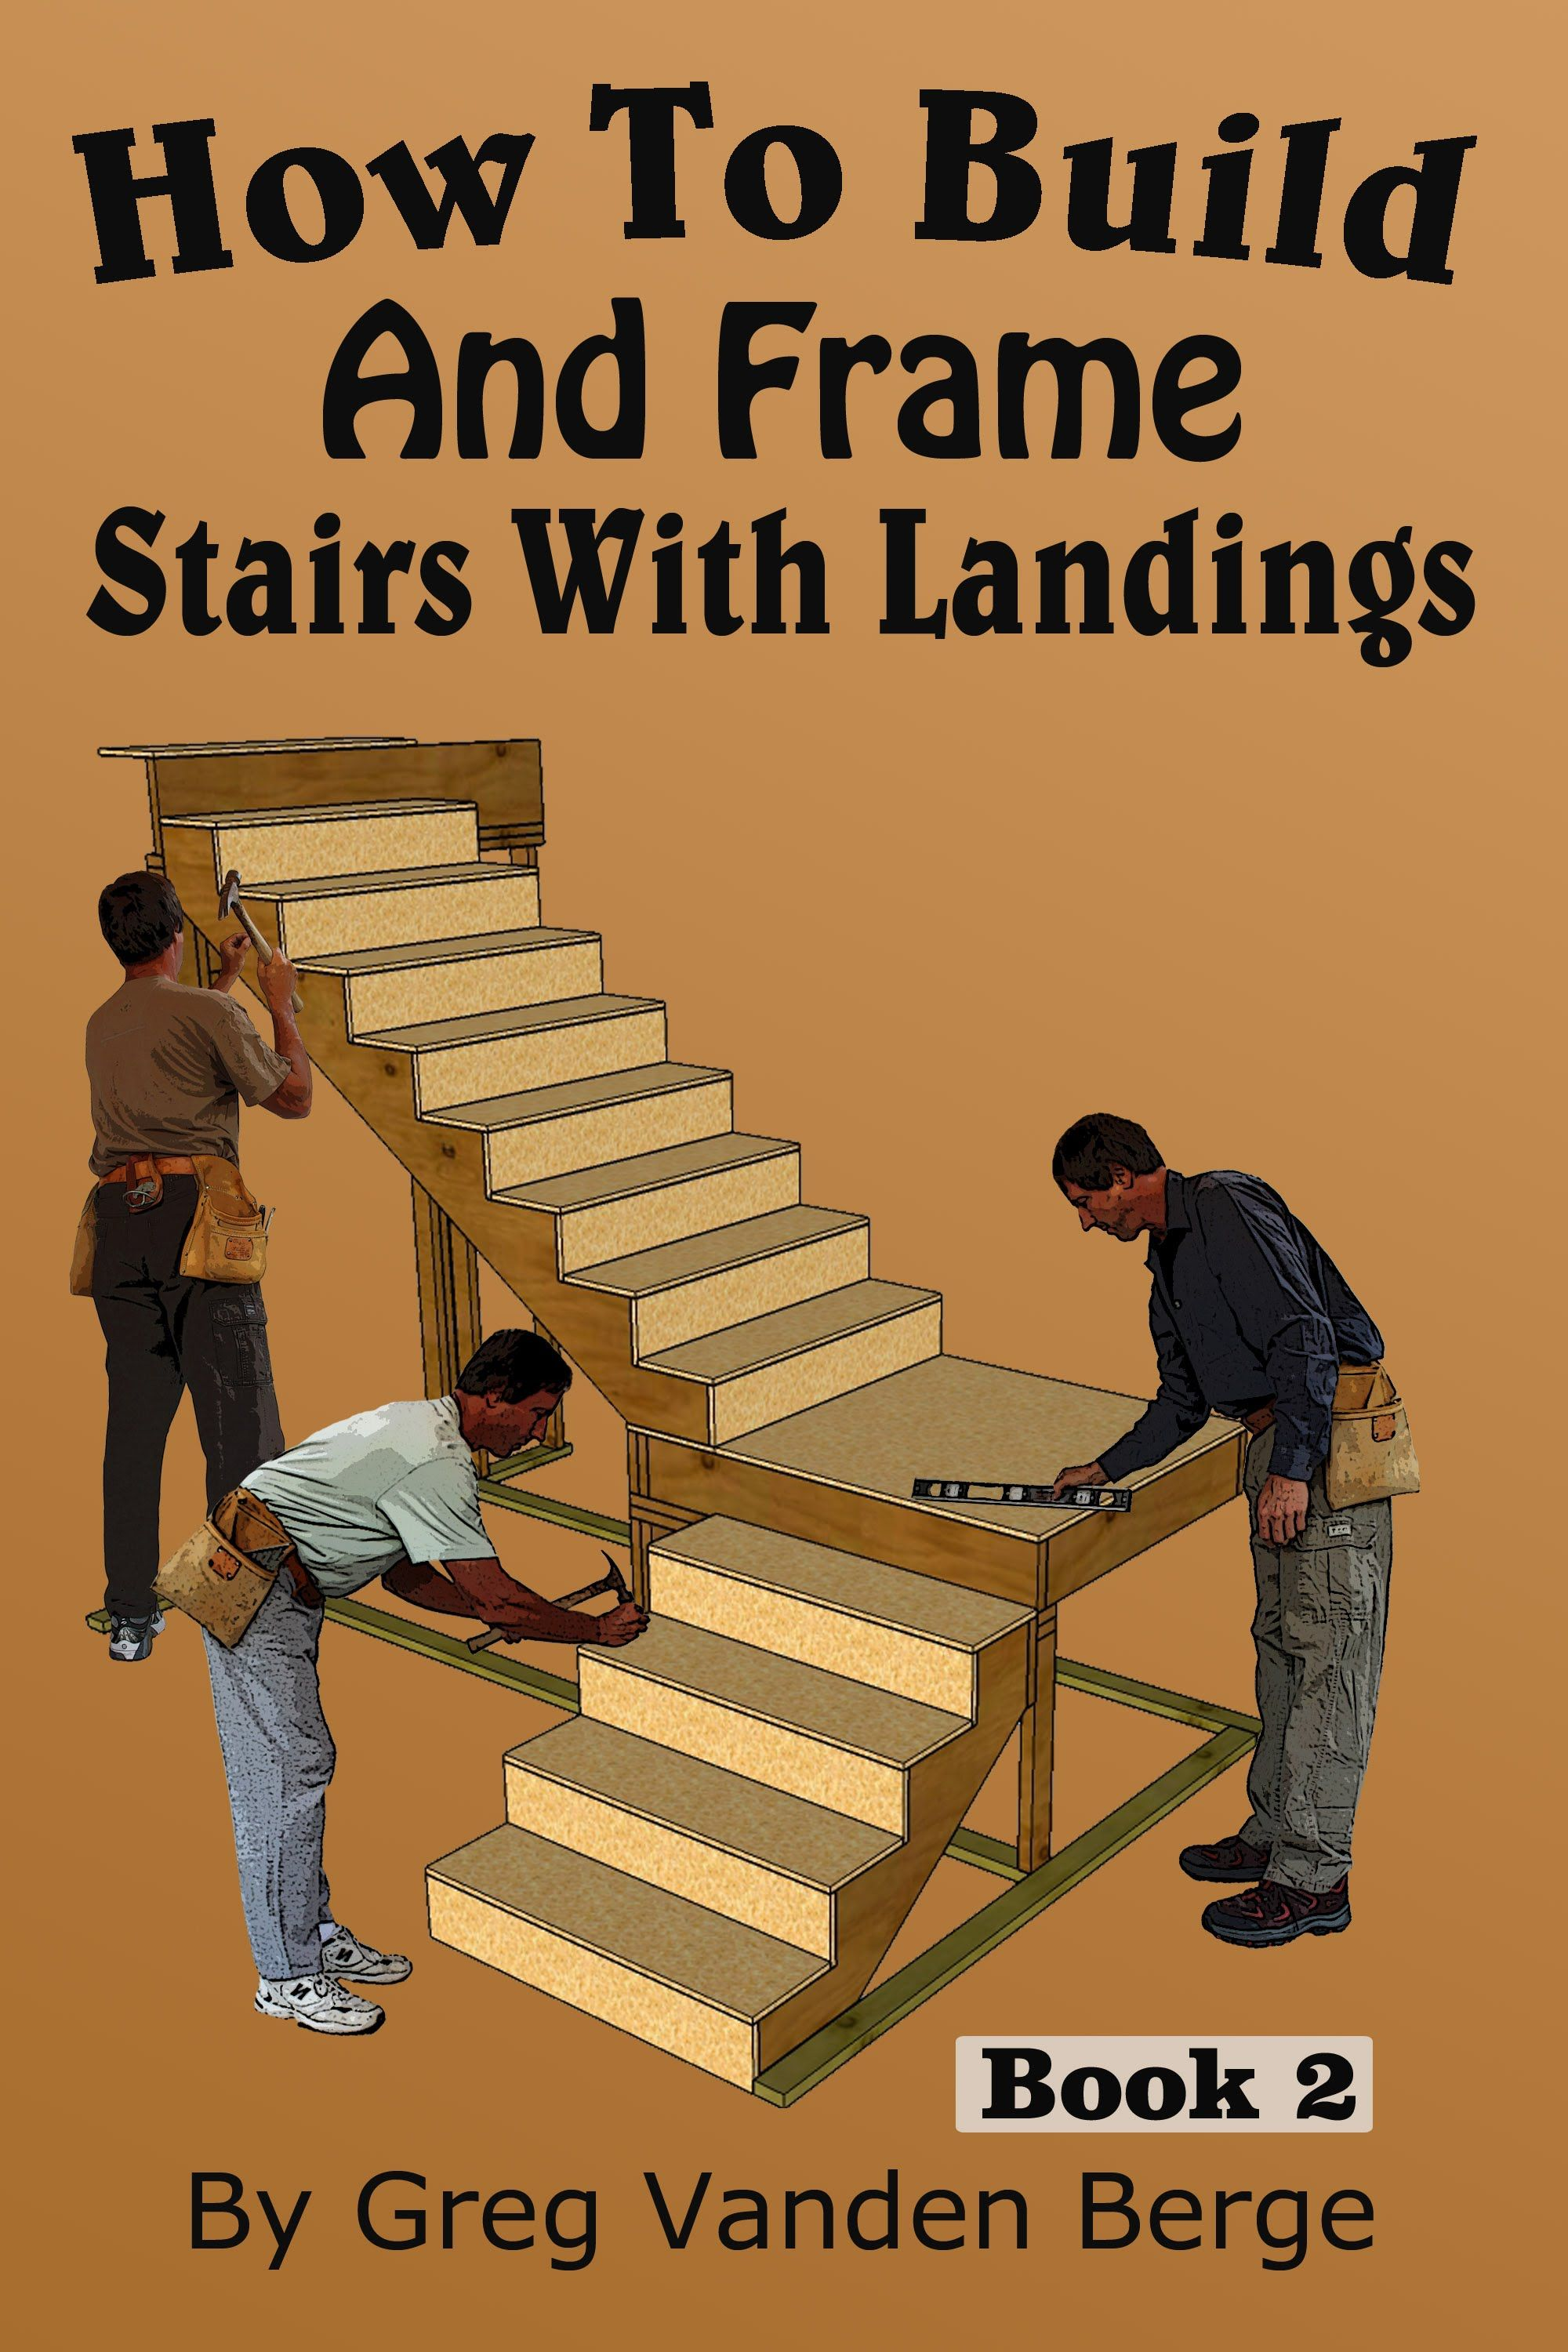 How To Build and Frame Stairs with Landings